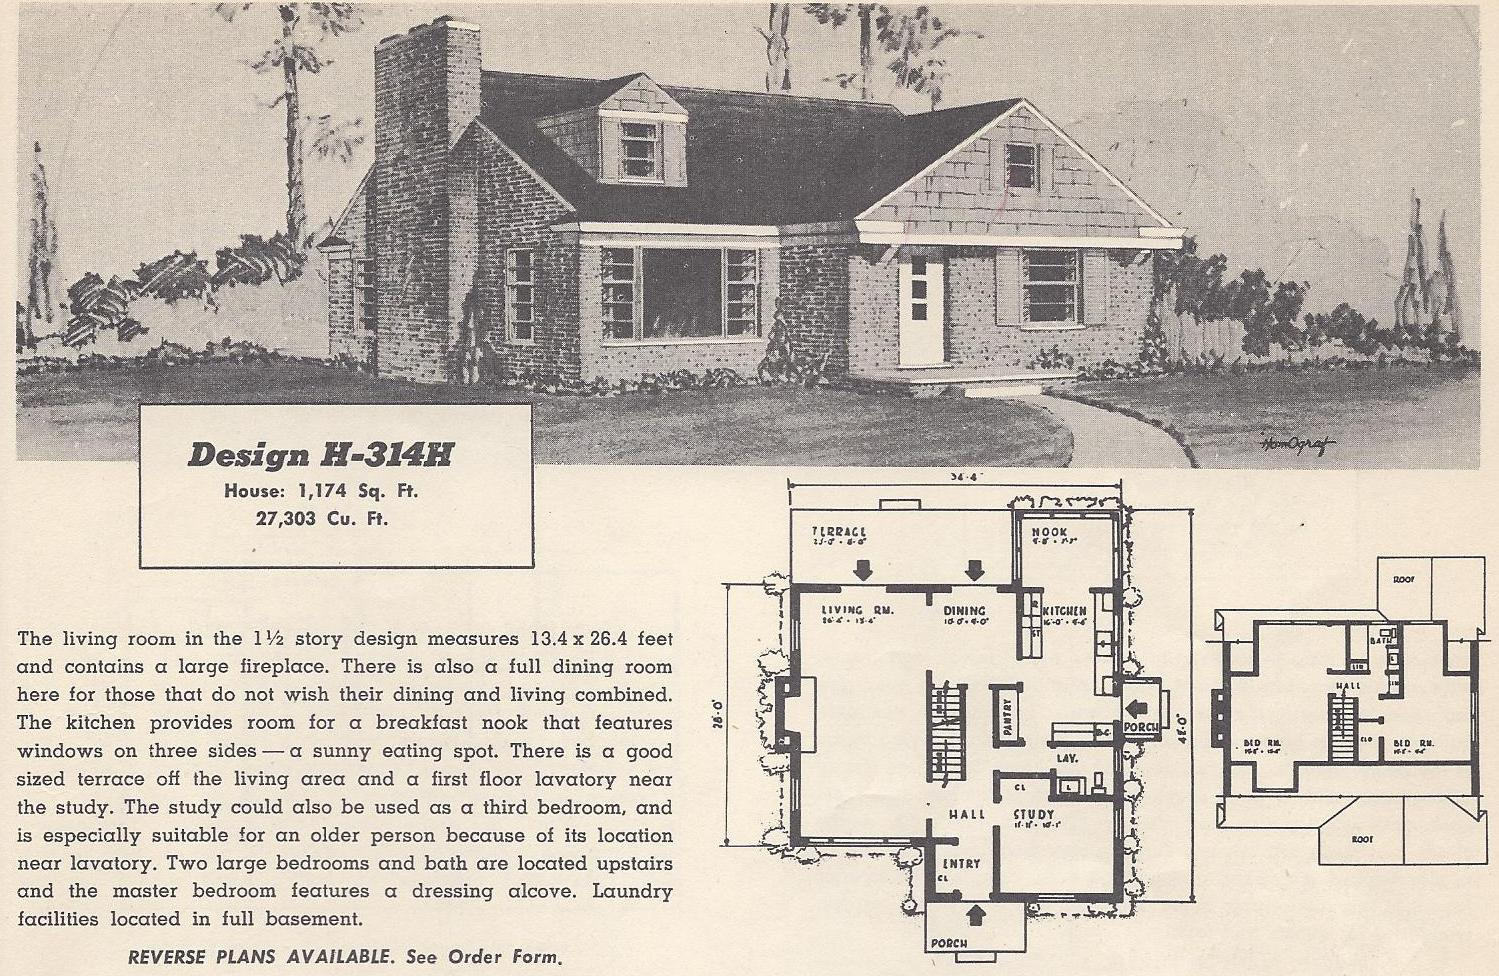 Vintage house plans 314h antique alter ego for Vintage ranch house plans